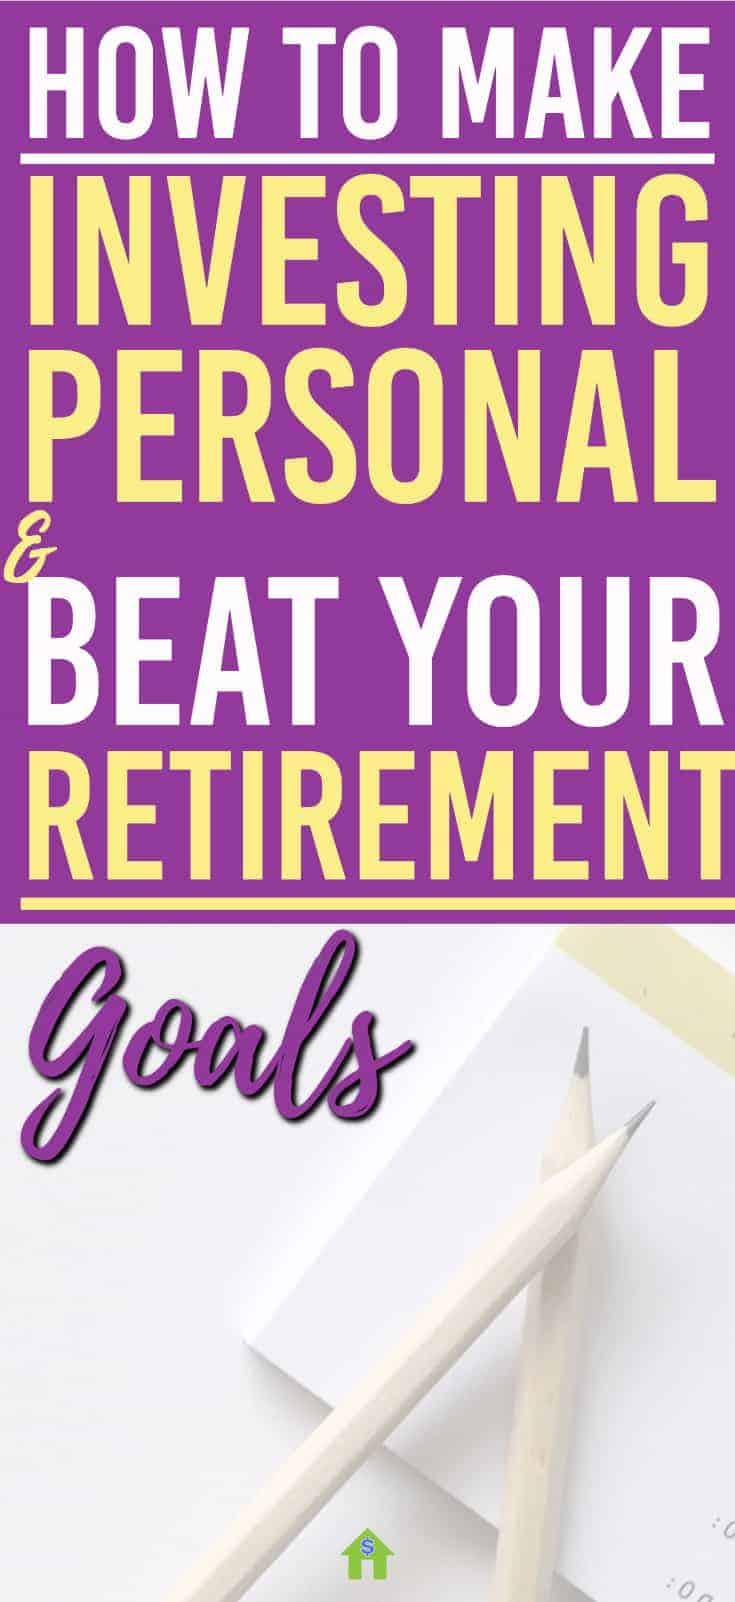 Retirement goals? Let's crush them. Here's How to Make Investing Personal and Beat Your Retirement Goals | Retirement | Investing |